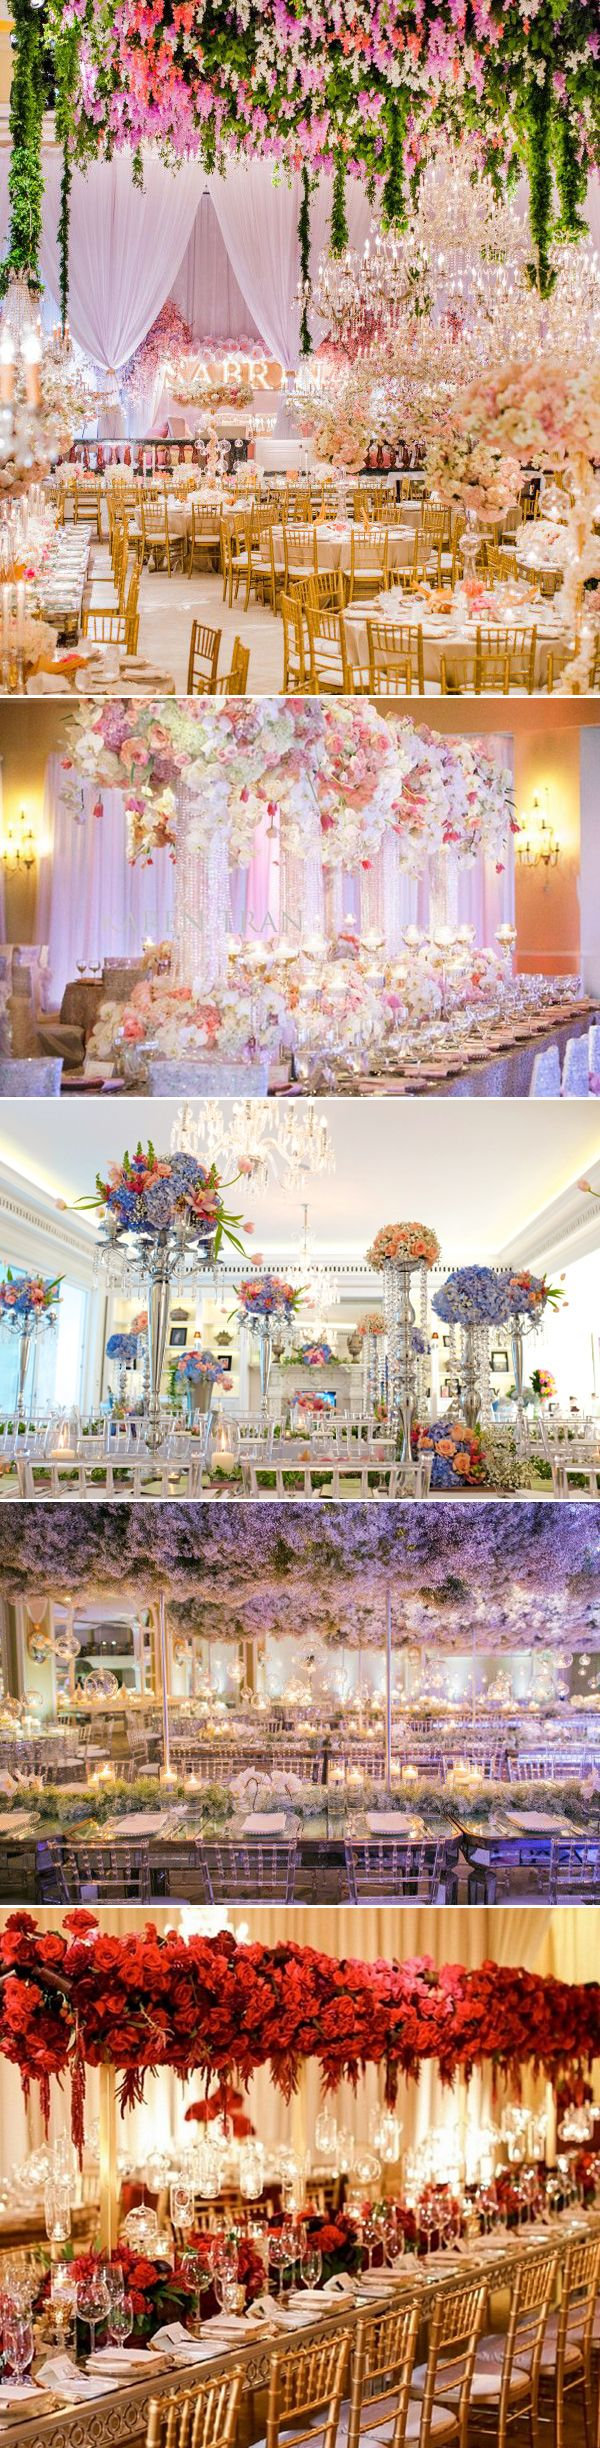 Best 25 Indoor wedding receptions ideas on Pinterest Indoor